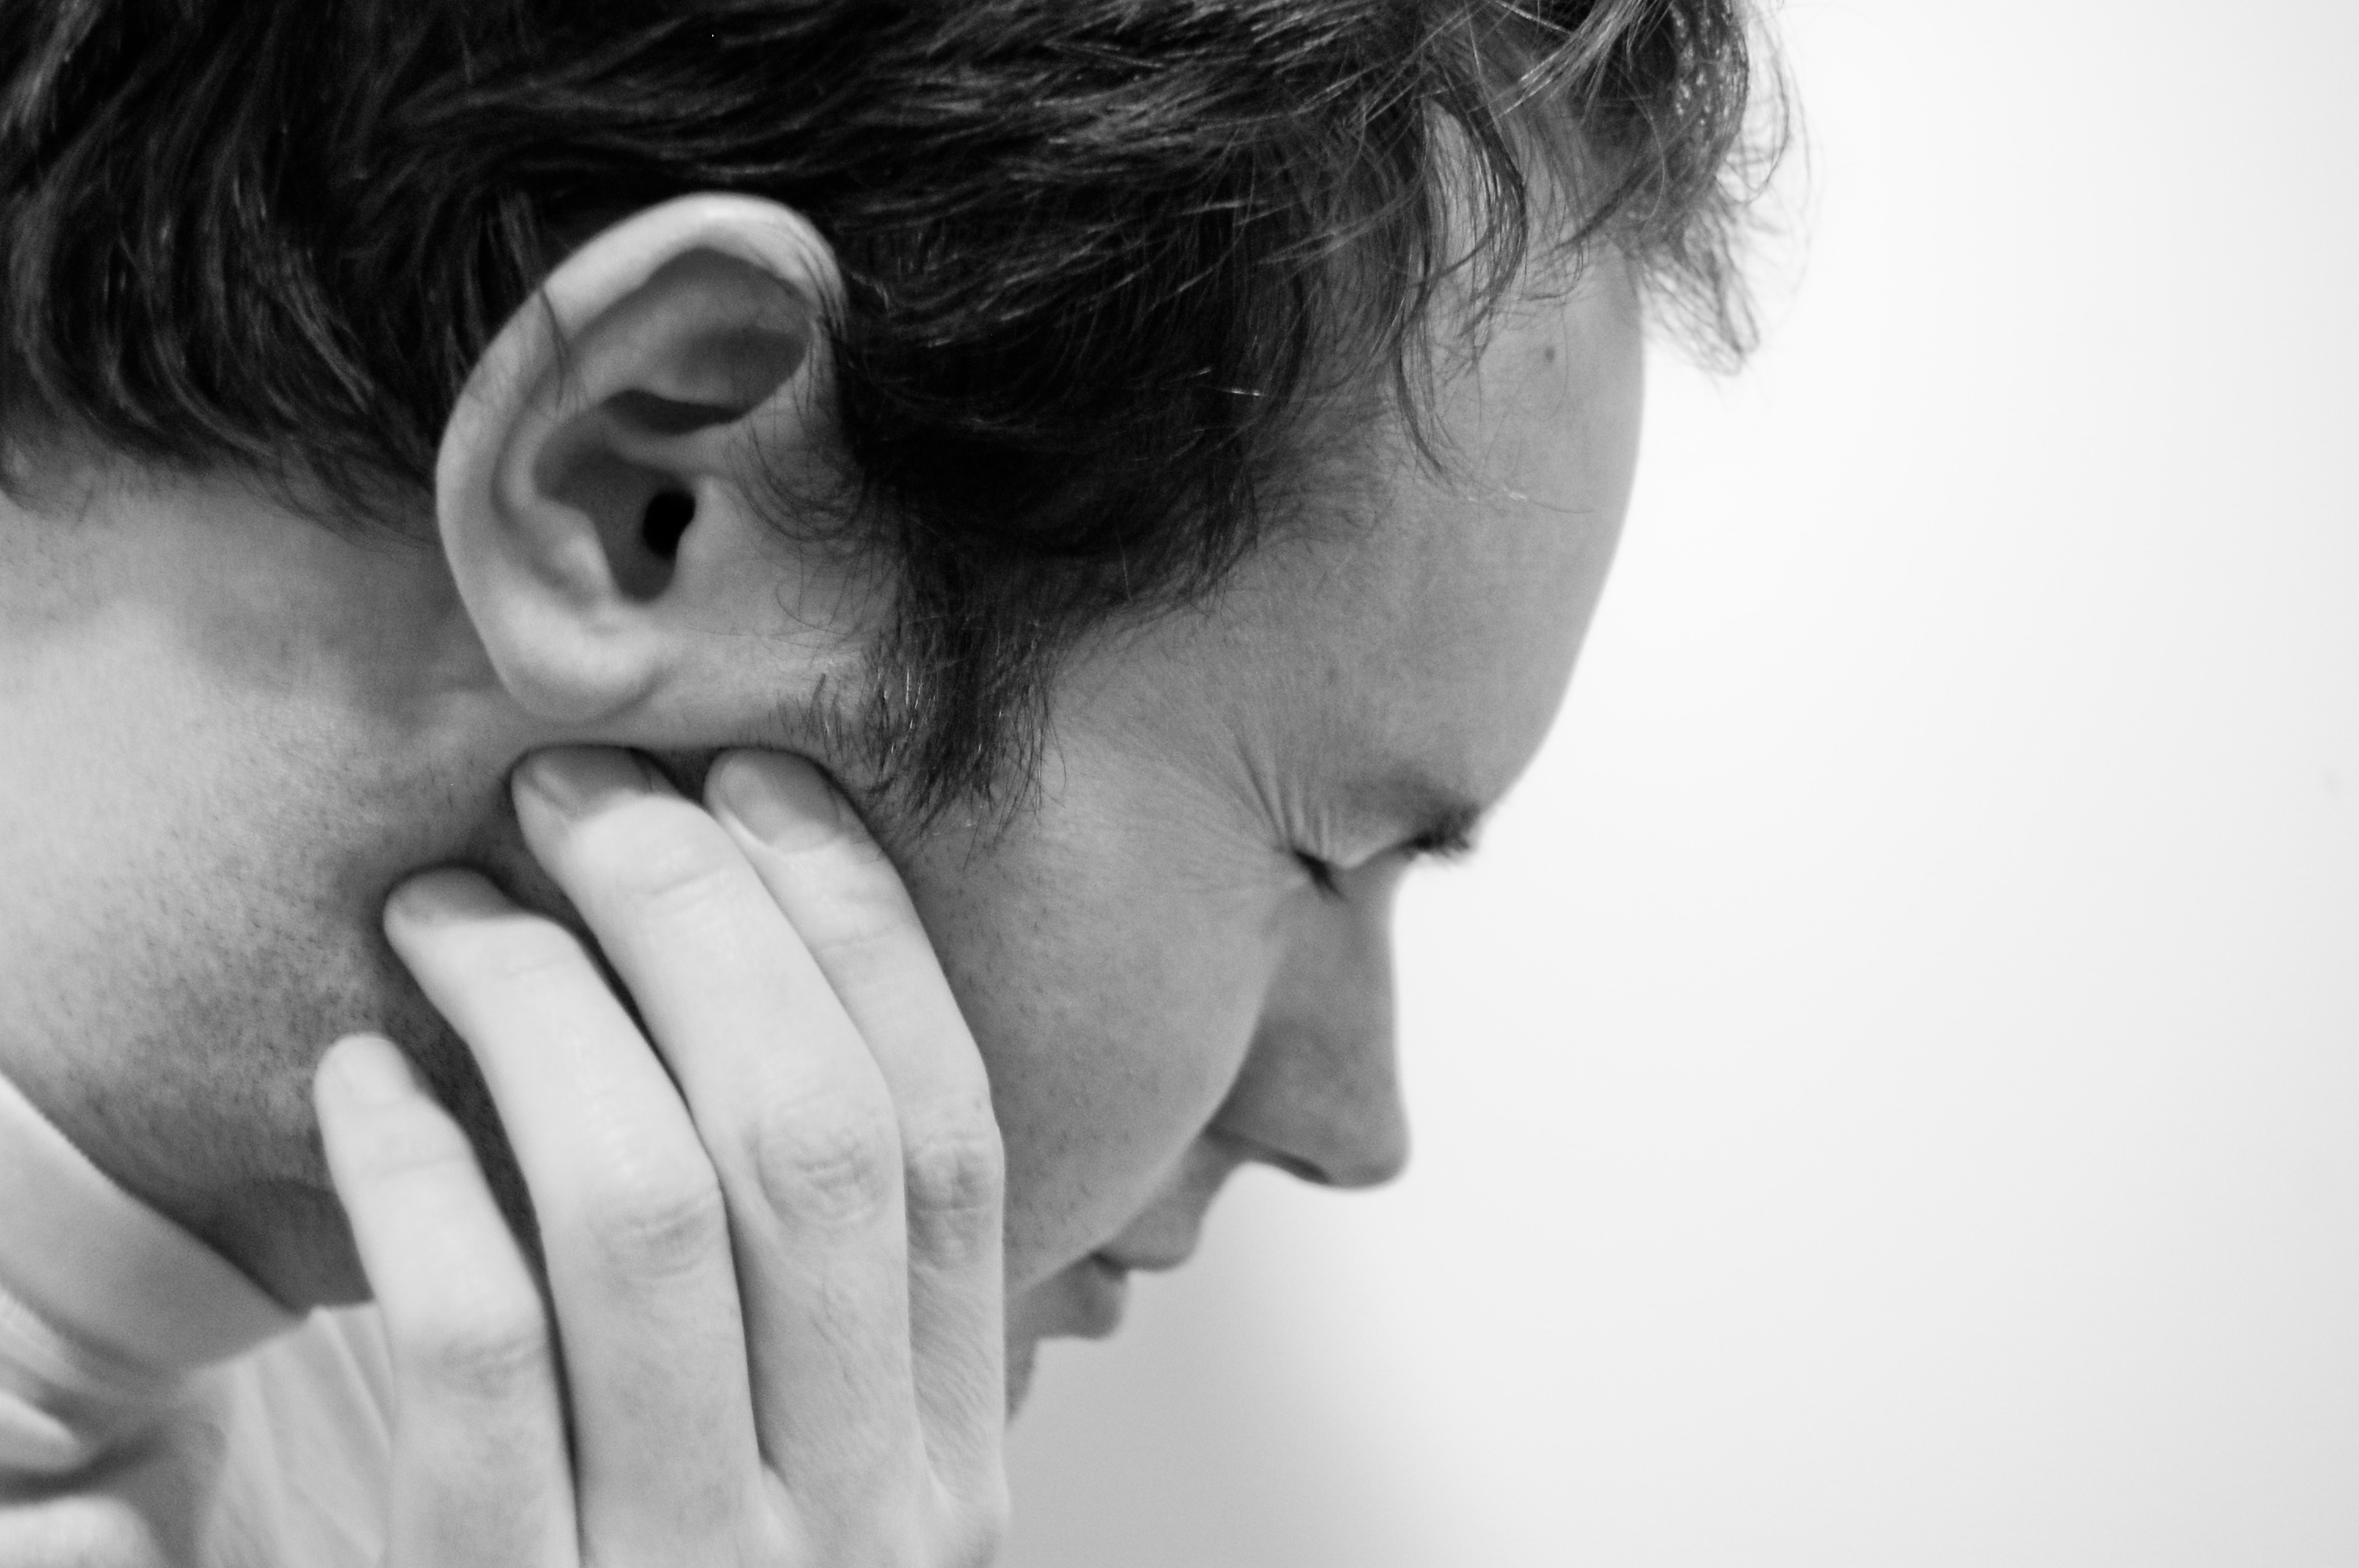 Therapeutic Exercise Supported in the Management of Chronic Non-Specific Neck Pain